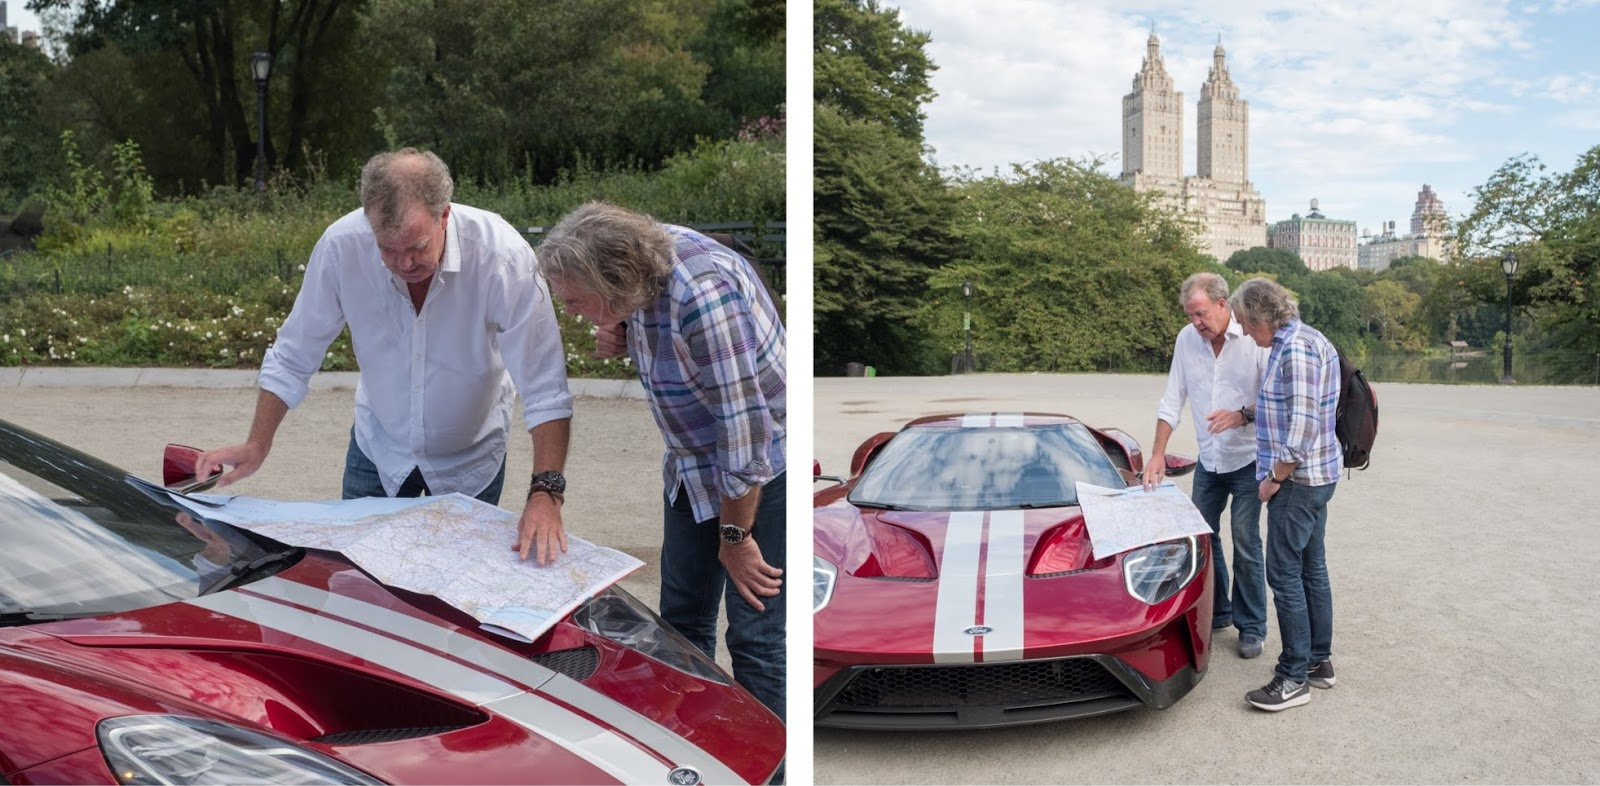 British Tv Trio Jeremy Clarkson Richard Hammond And James May Attempt To Solve This Conundrum In An Episode Of The Grand Tour